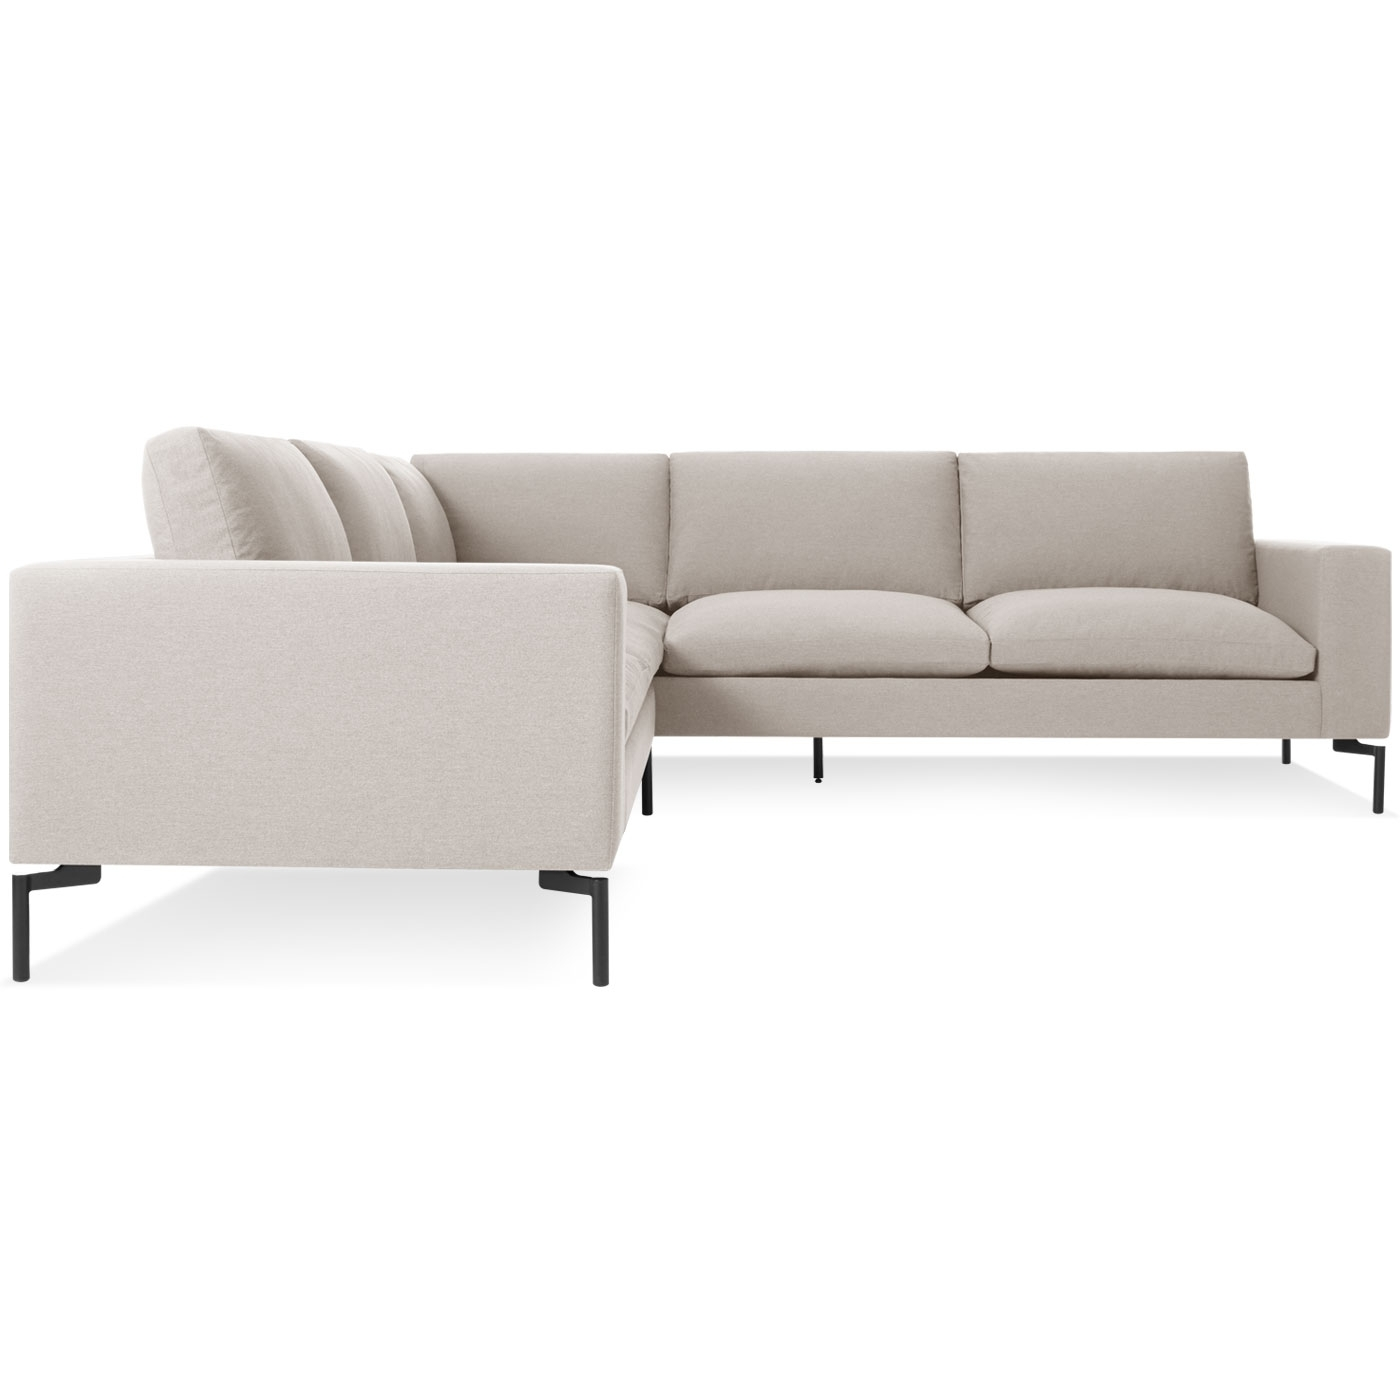 Most Popular Newmarket Ontario Sectional Sofas With New Standard Small Sectional Sofa – Modern Sofas (View 8 of 20)